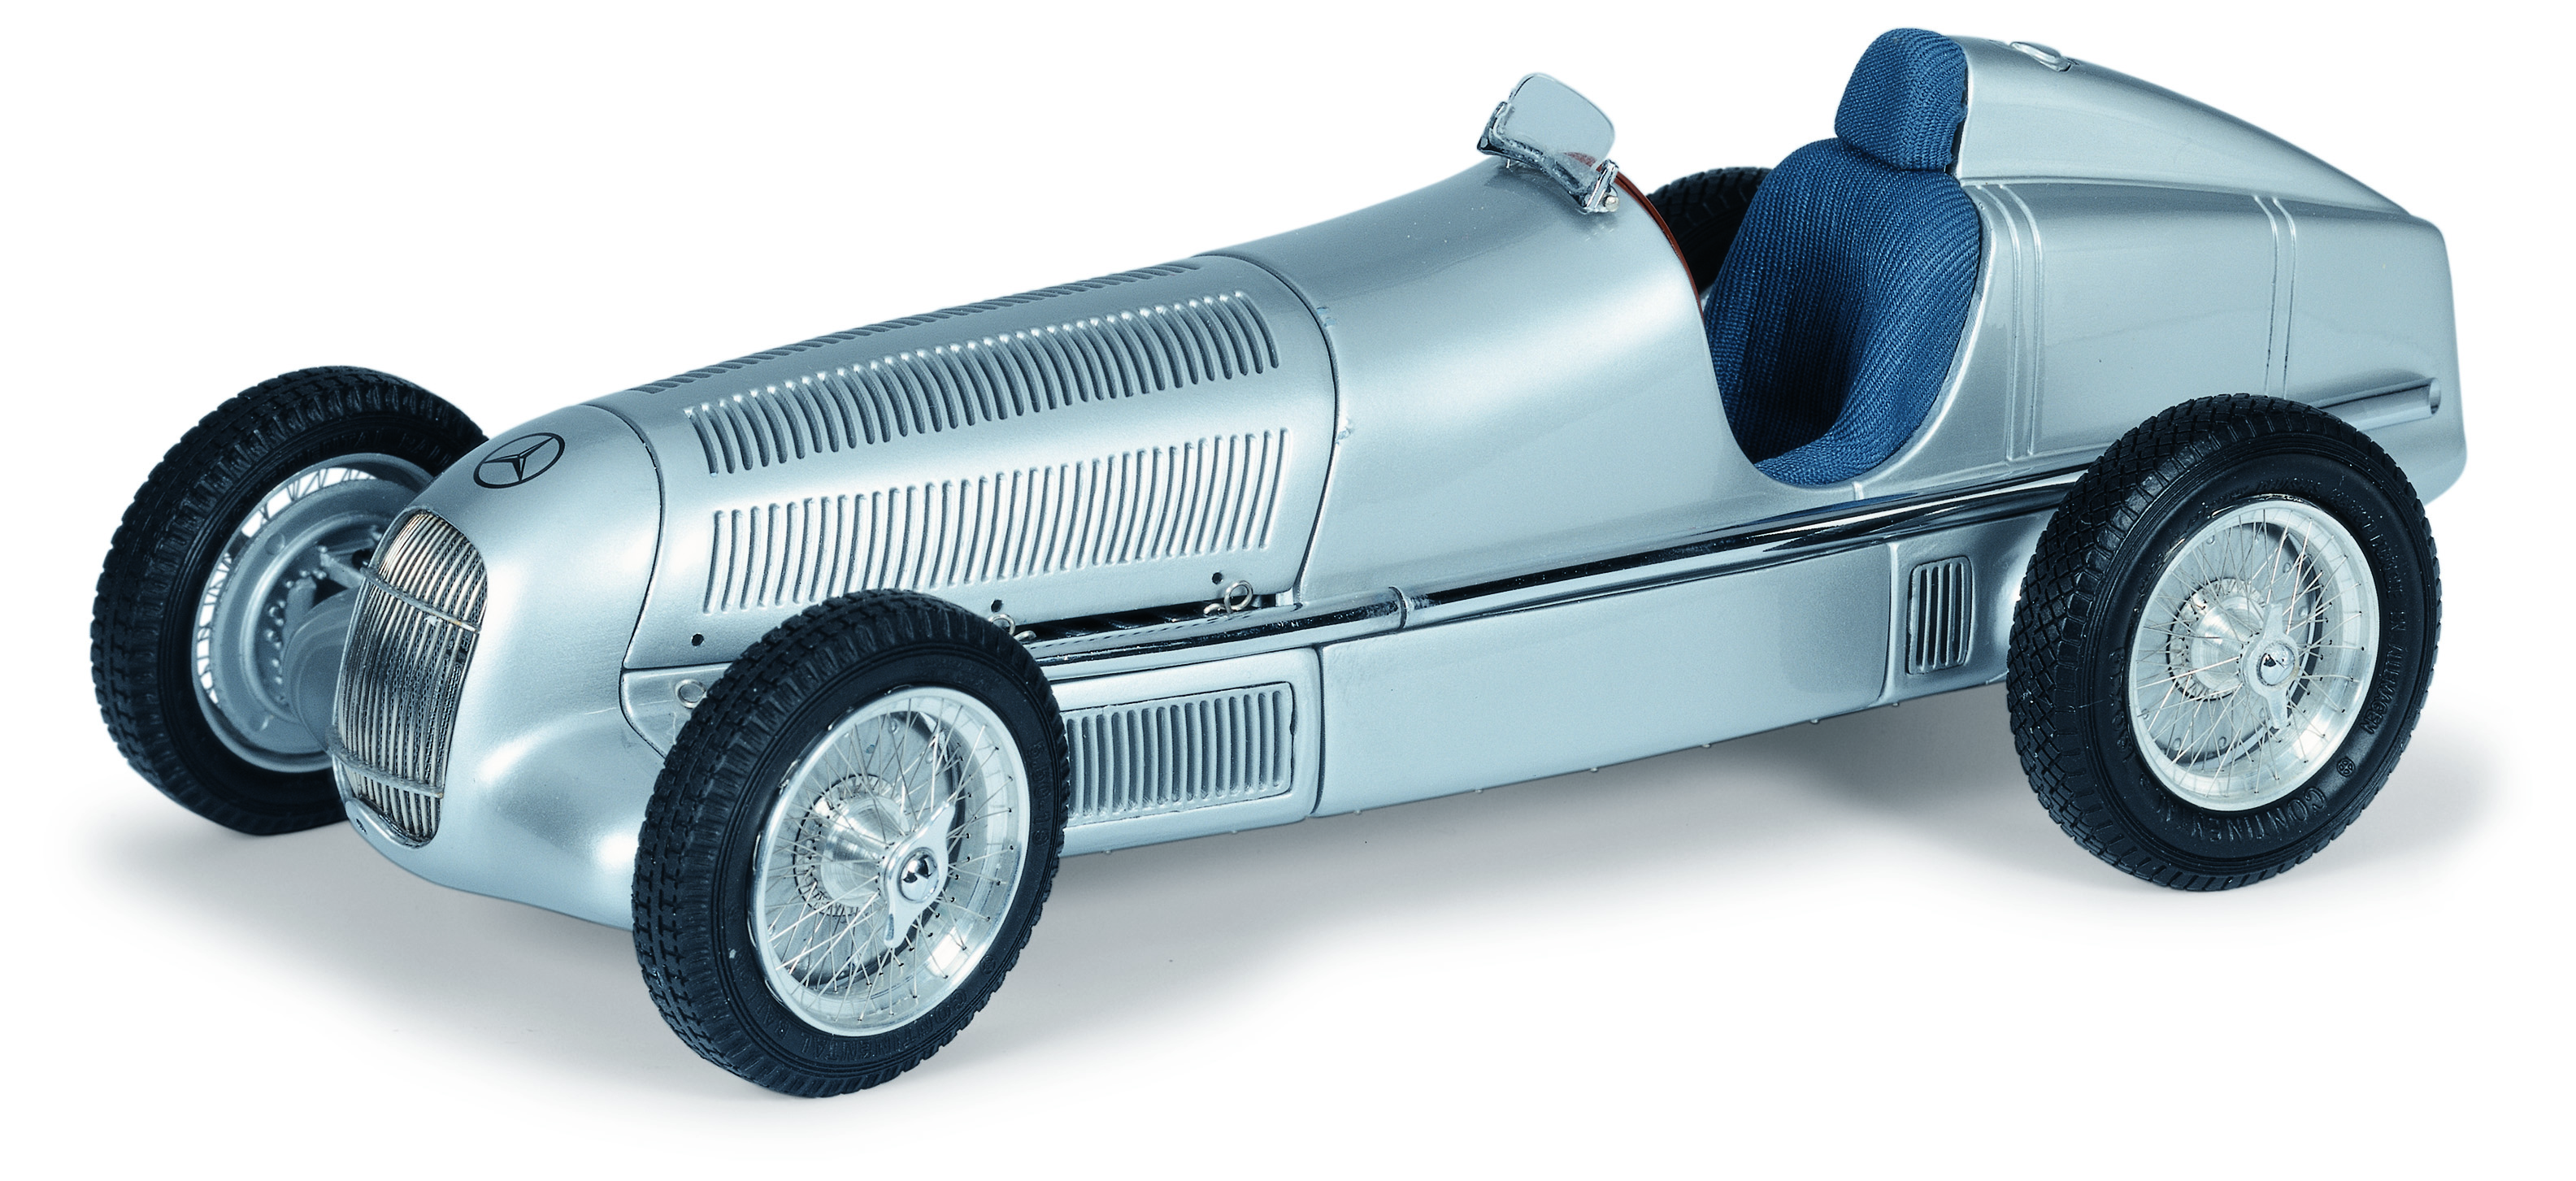 1934 Mercedes-Benz W25 1:18 scale model car by CMC USA